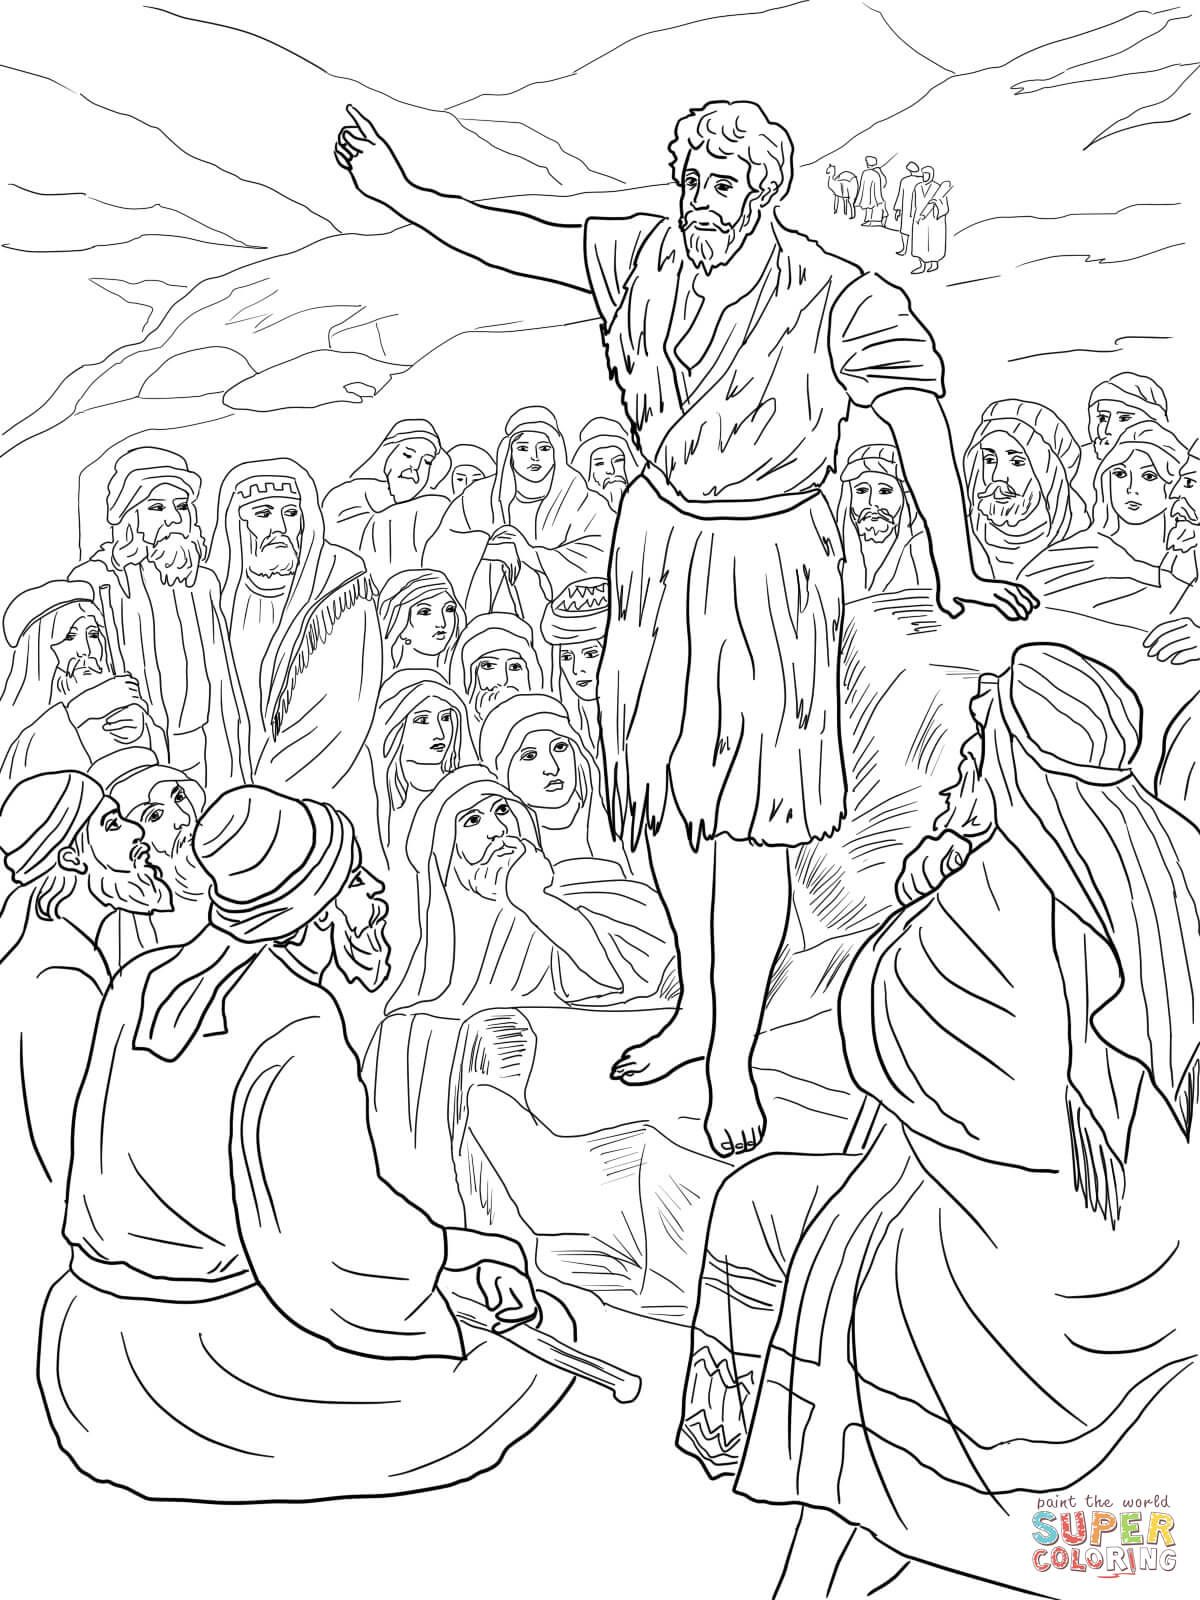 Coloring Page For Zechariah Sunday School Coloring Pages John